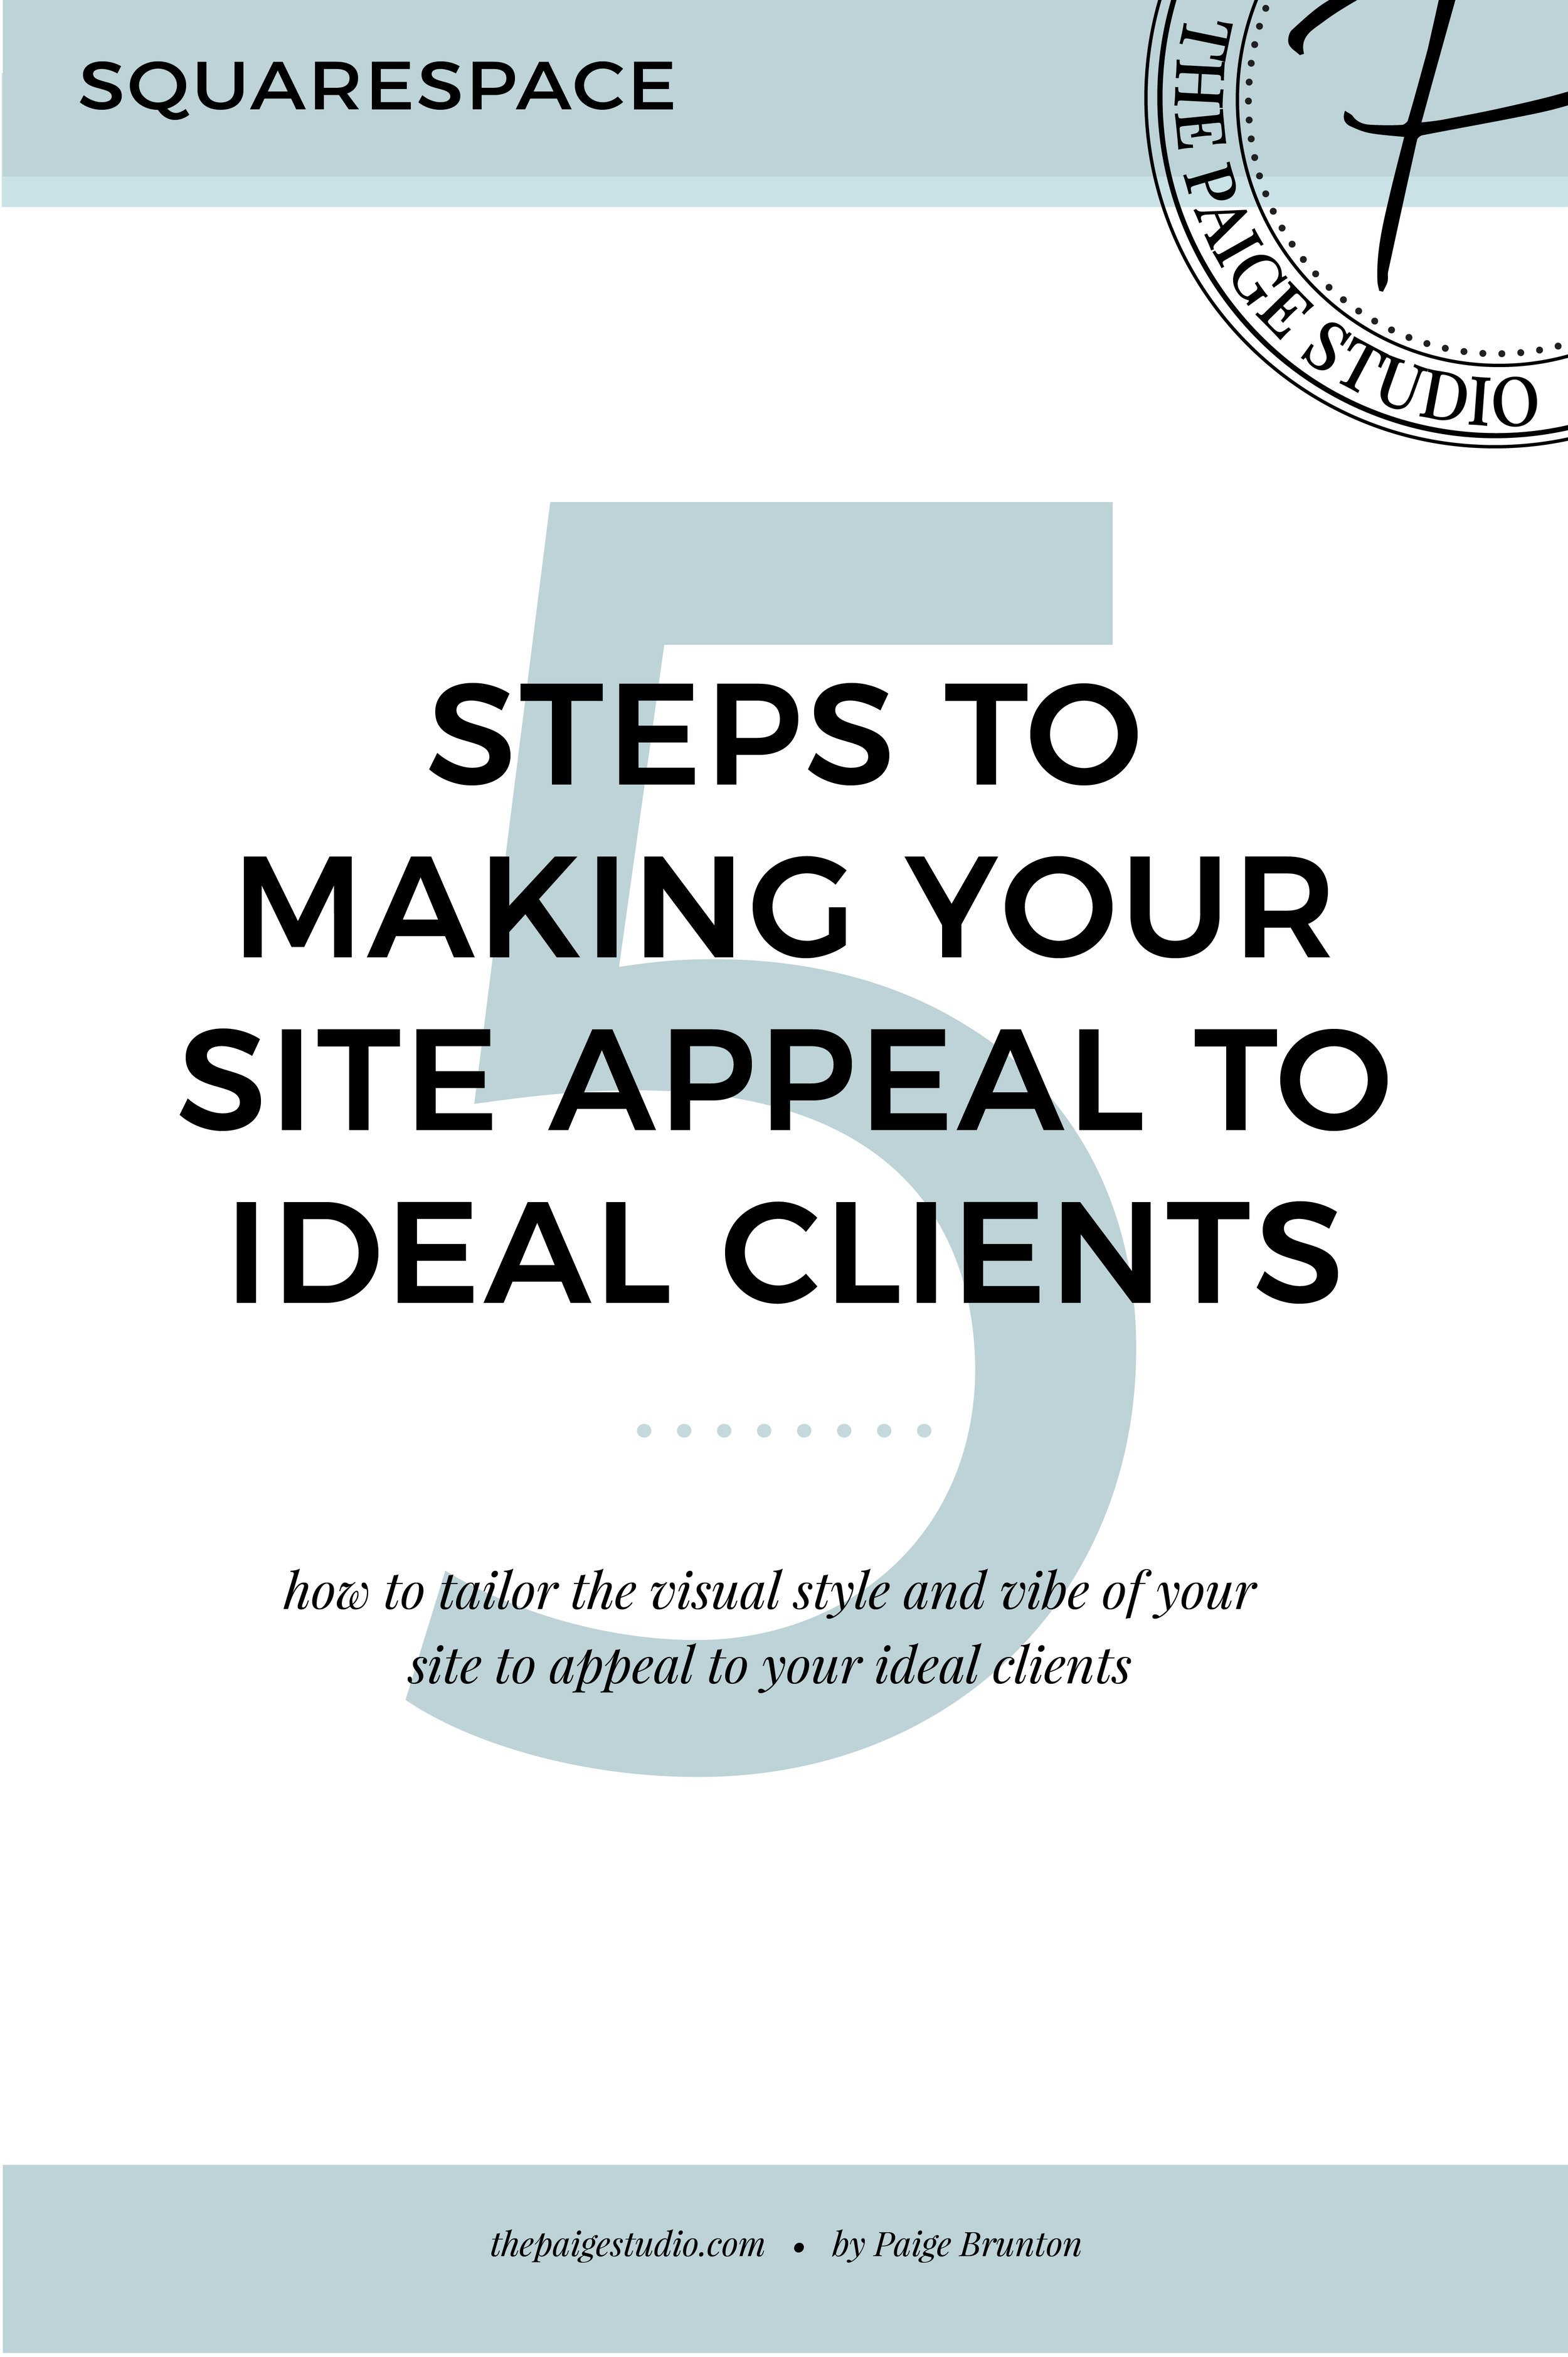 5 steps to make your sites style and vibe appeal to your ideal client.png